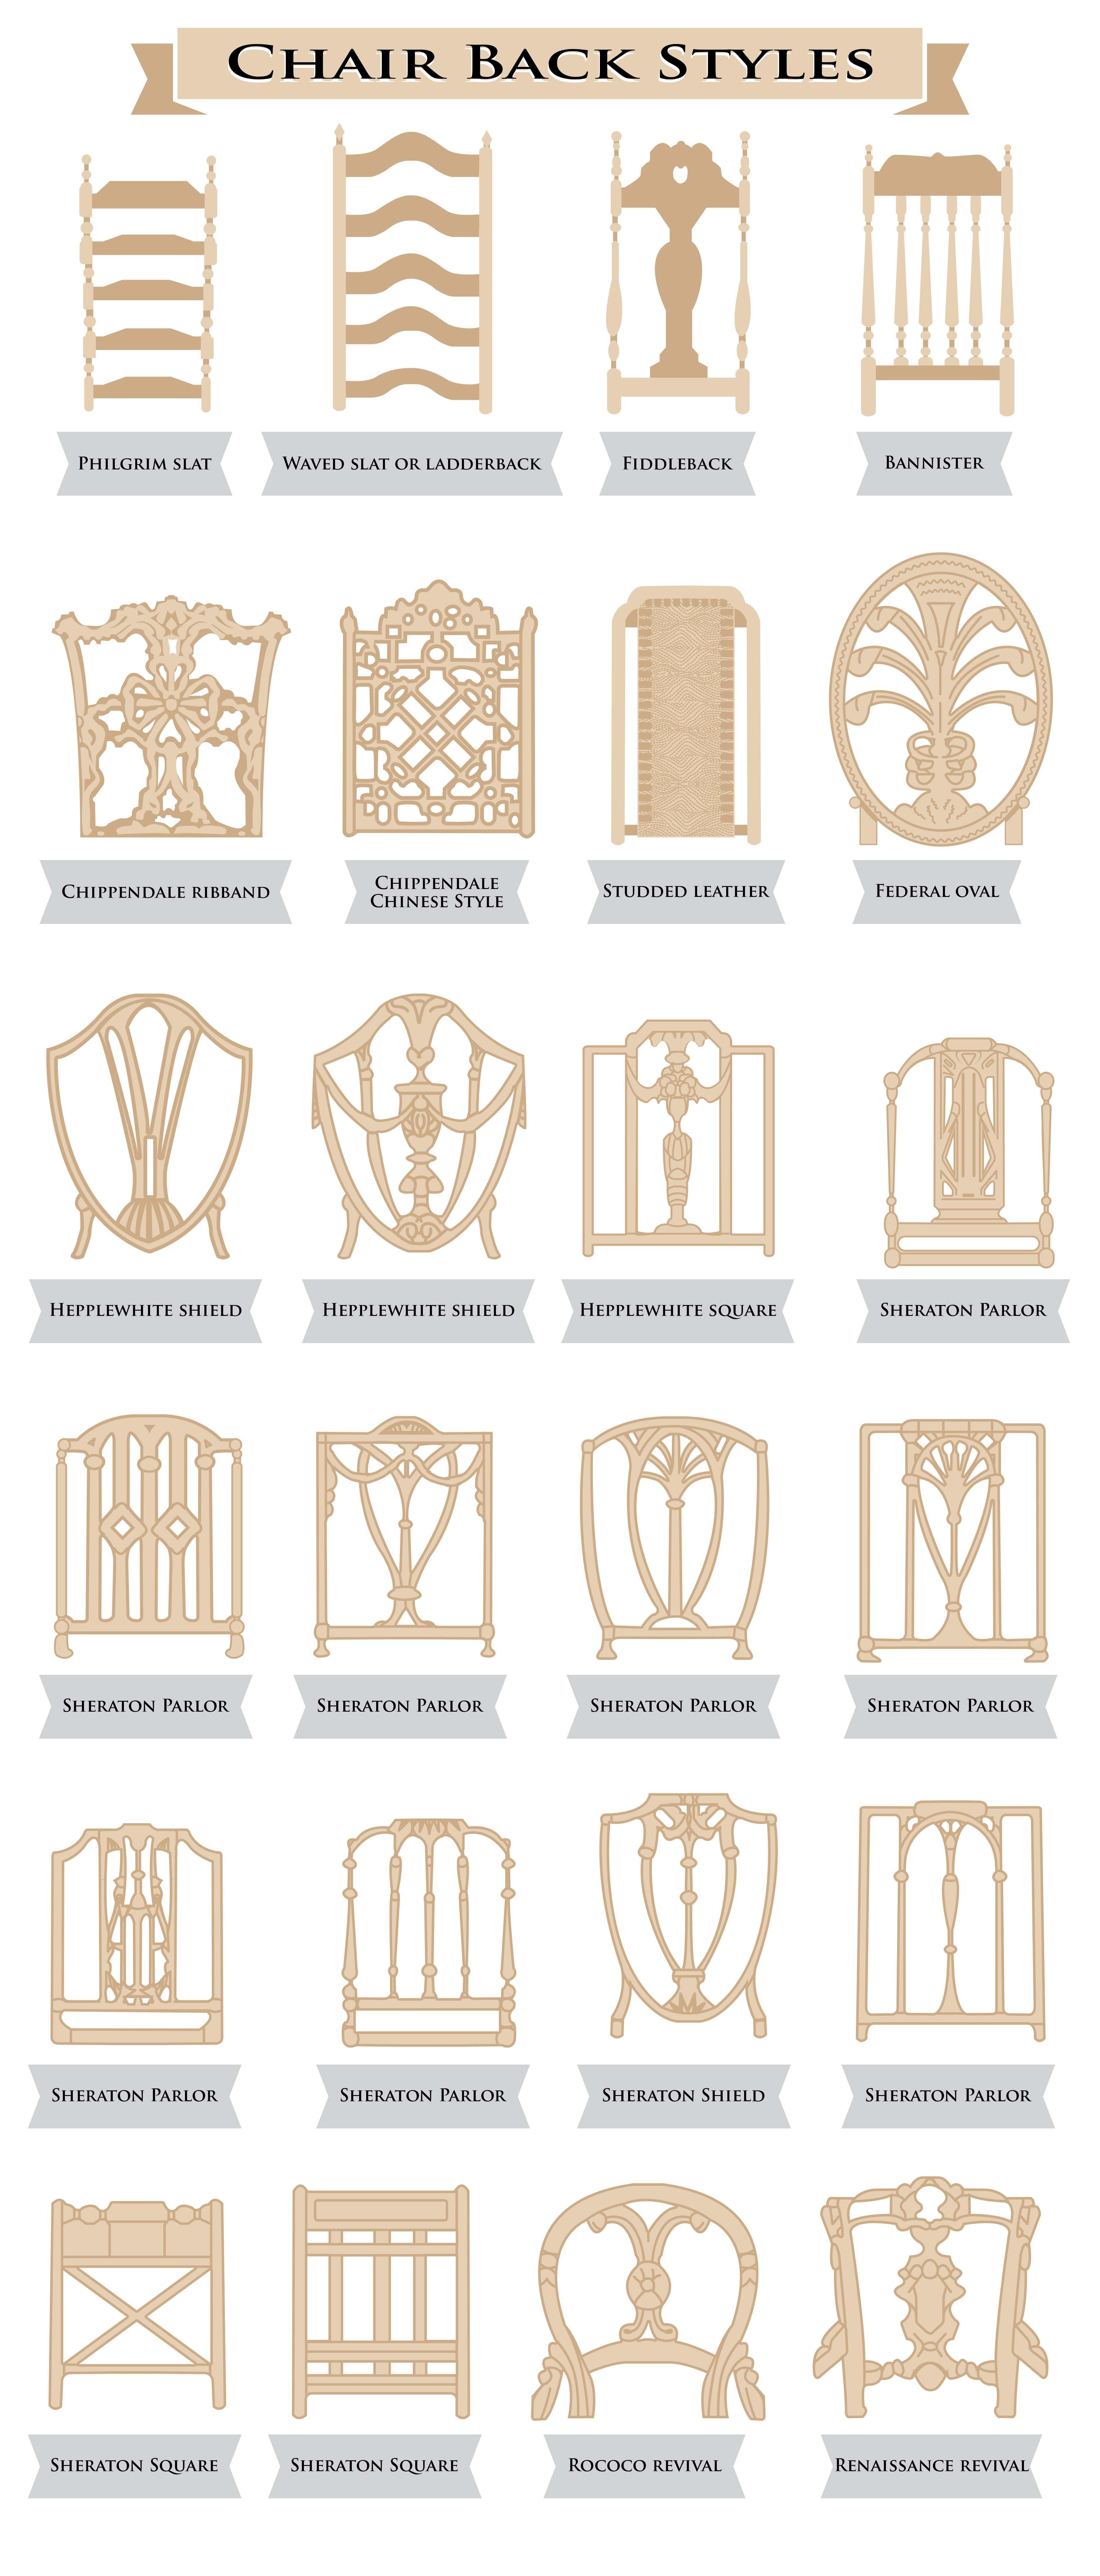 Chart showing all the different chair back styles